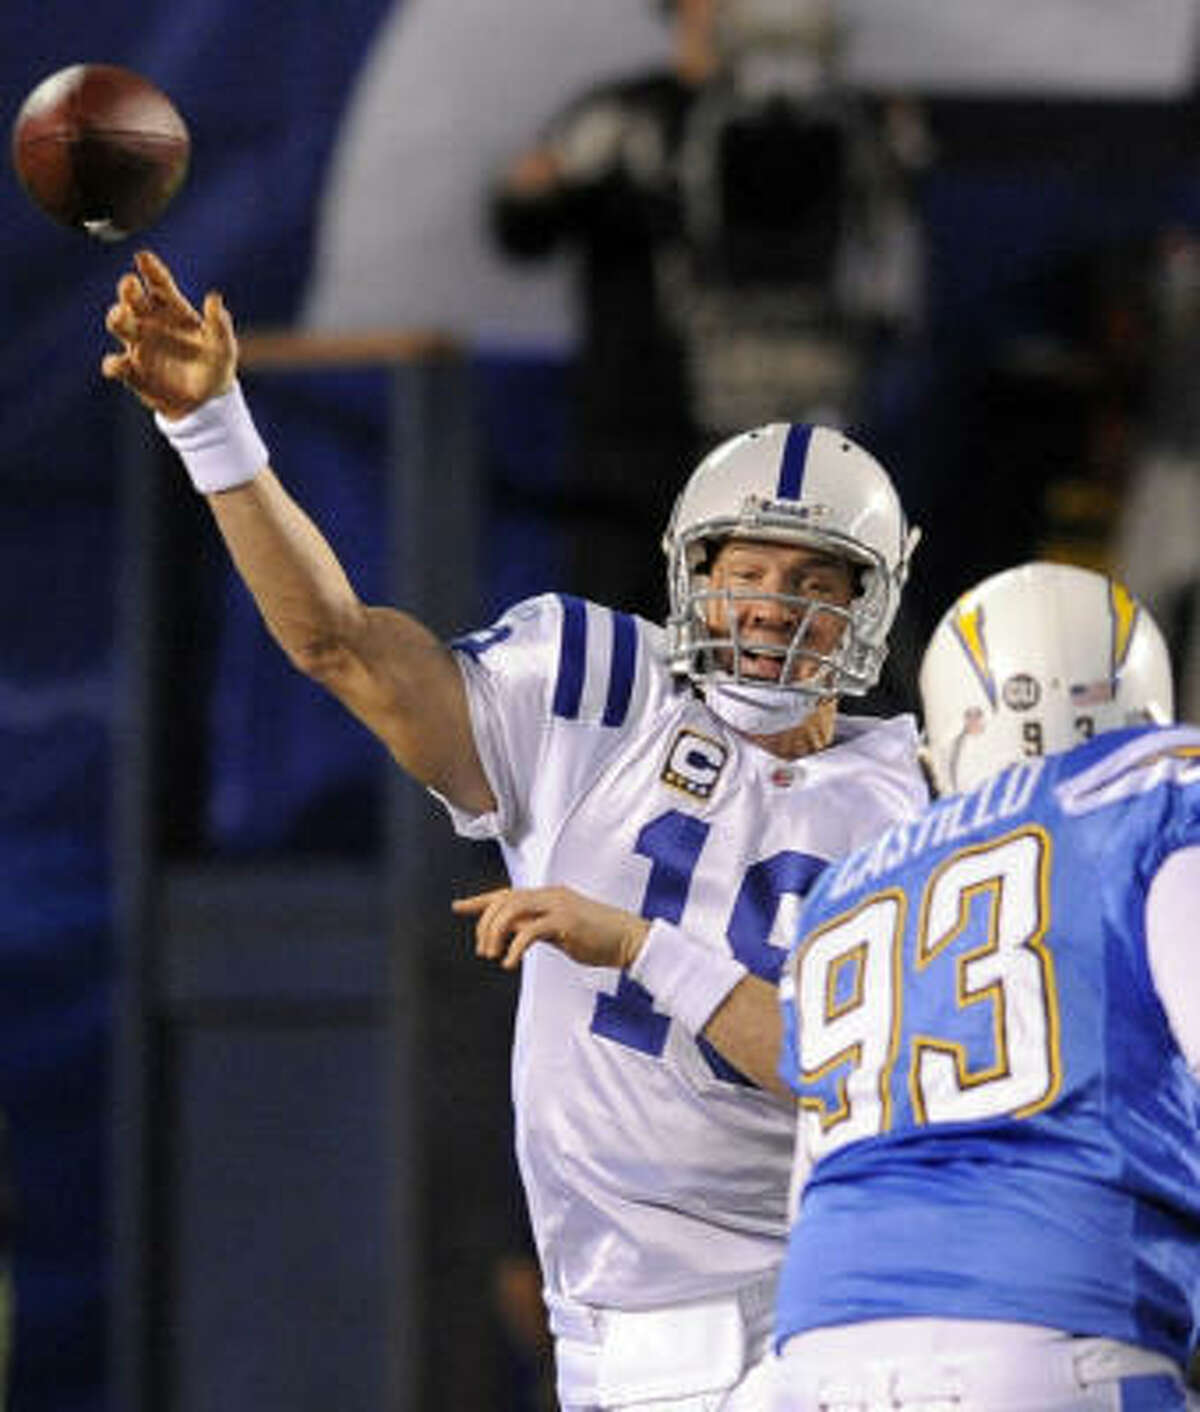 Indianapolis Colts quarterback Peyton Manning, left, throws over San Diego Chargers defensive tackle Luis Castillo during the first quarter.